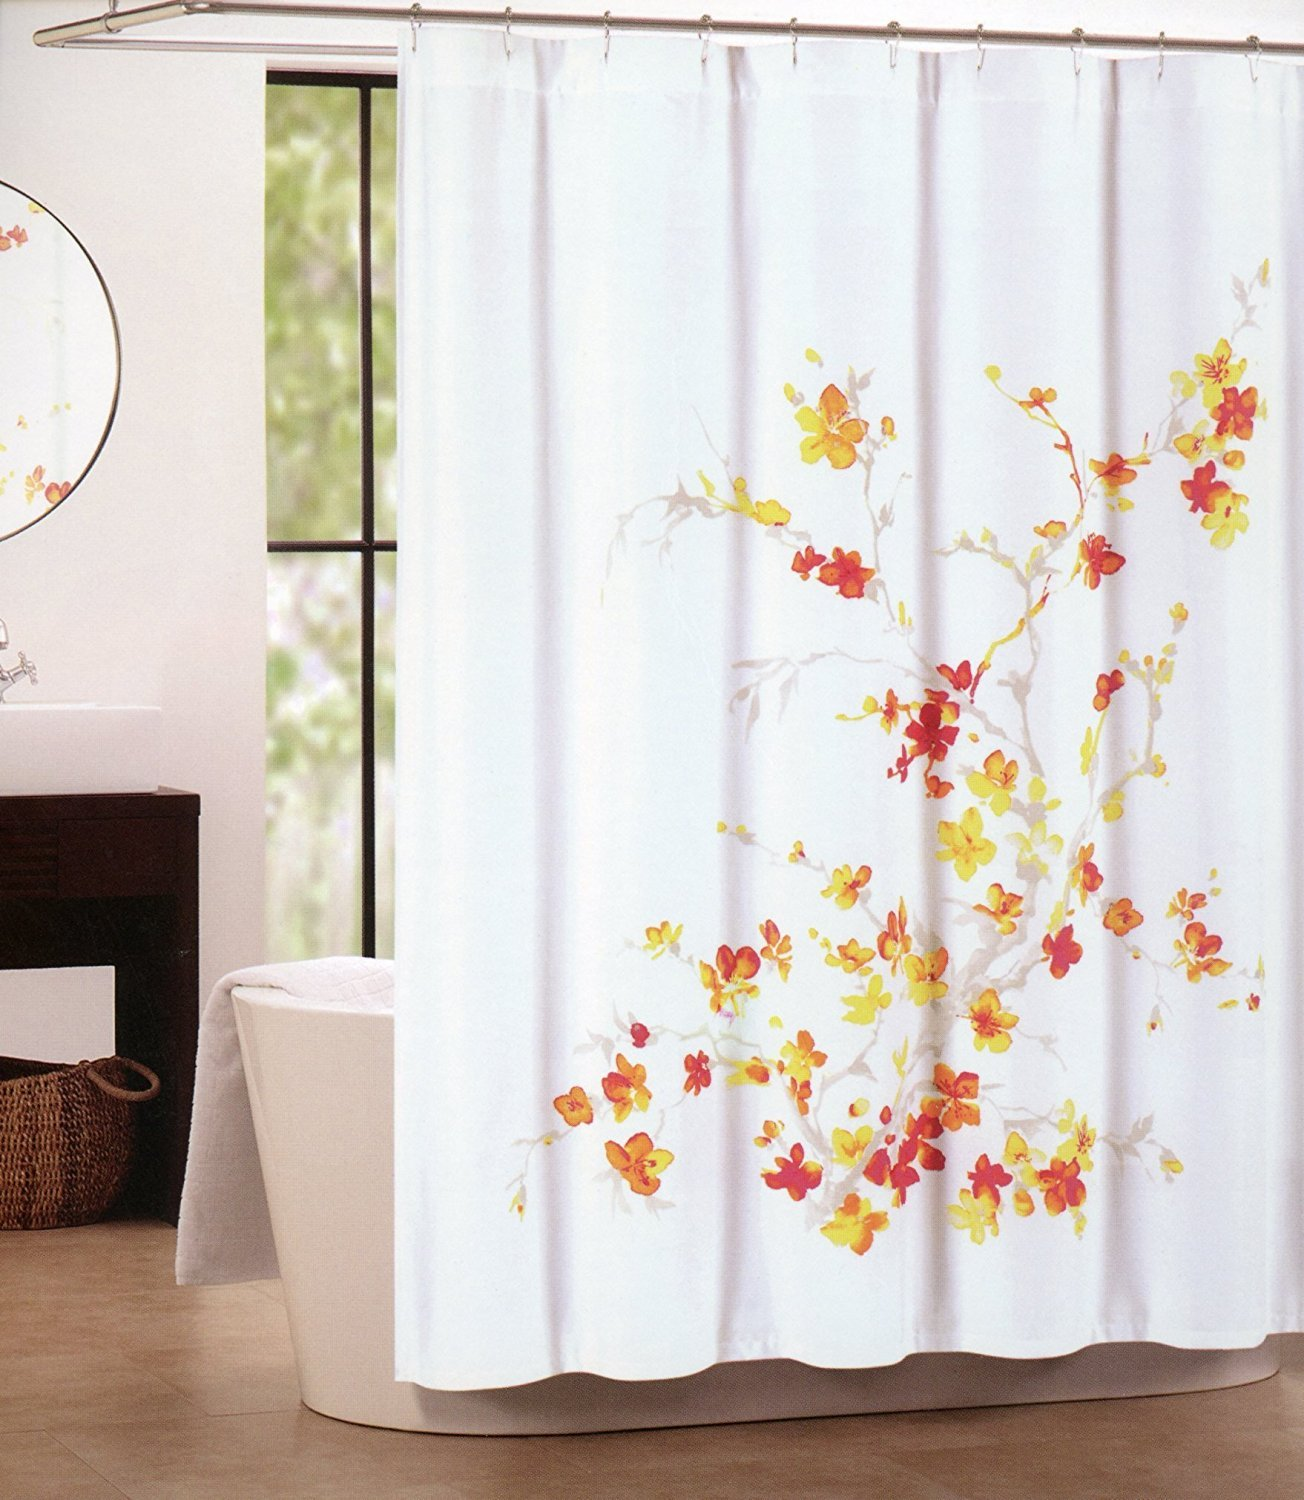 Tahari shower curtains - Amazon Com Tahari Home Printemps Shower Curtain In Floral Orange Red Yellow And Tan On White 72 X 72 Home Kitchen